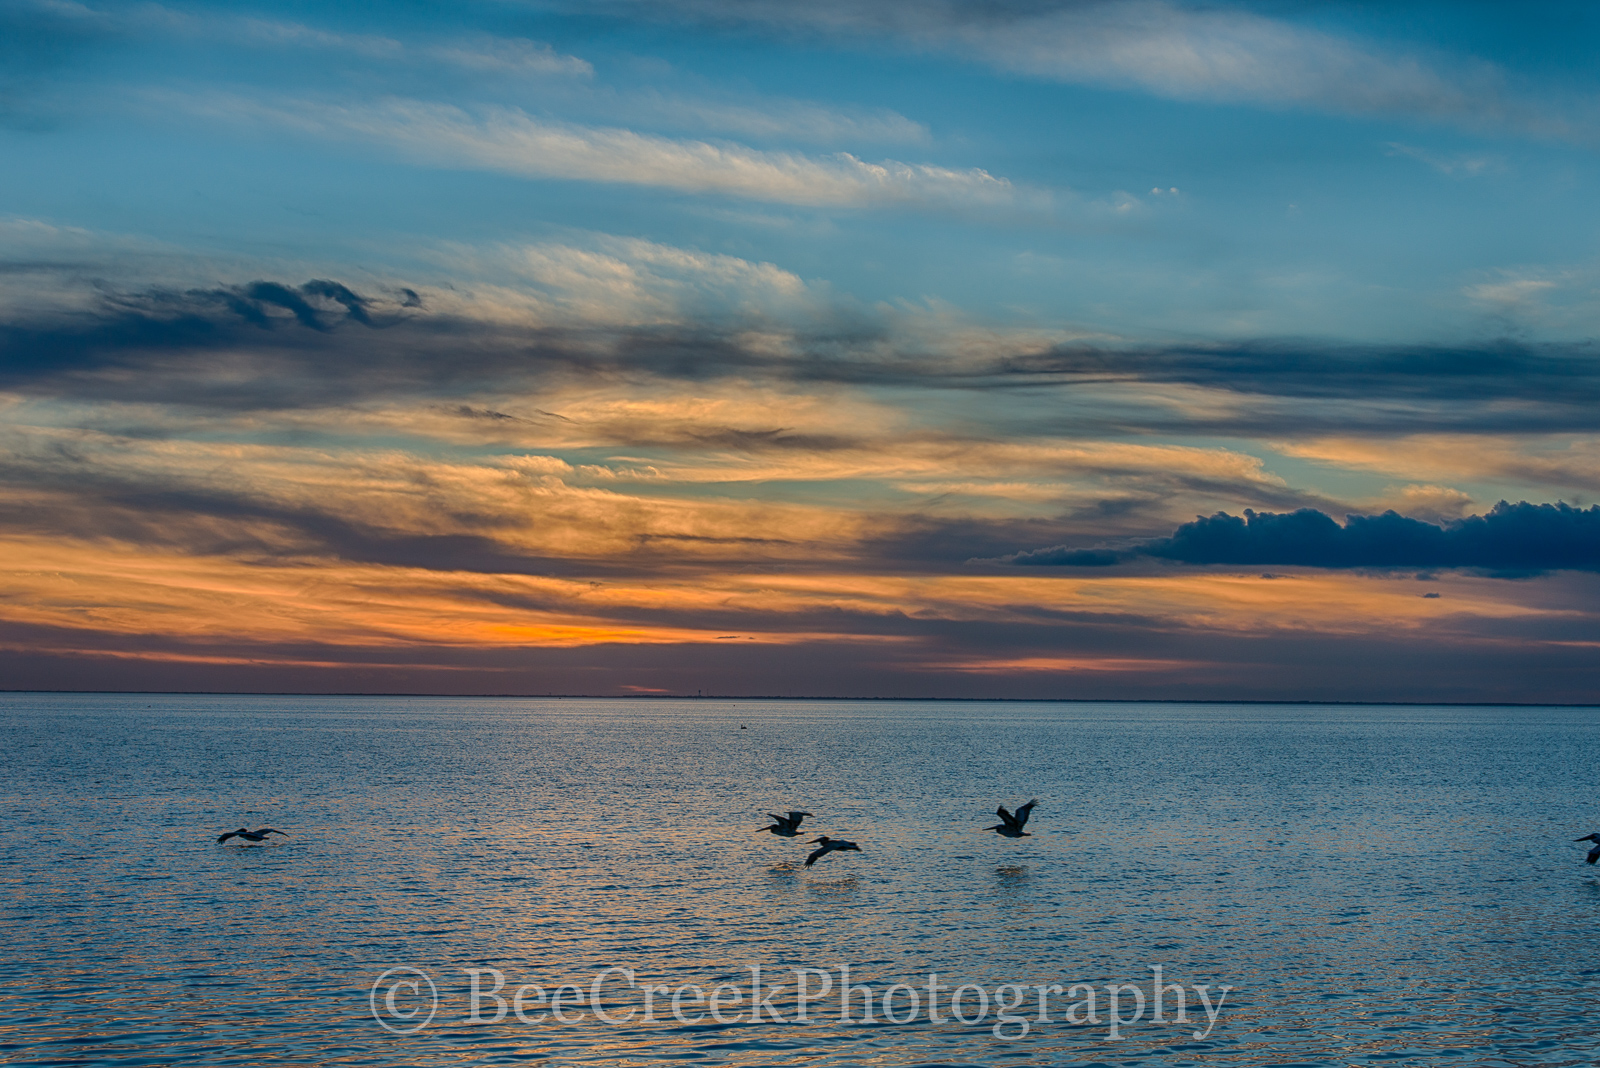 Padre Island, South Padre Island, South Padres, bay, birds, island, pelicans, south padre, sunset, landscape, colorful, coastal, beach, ocean, seascape, , photo